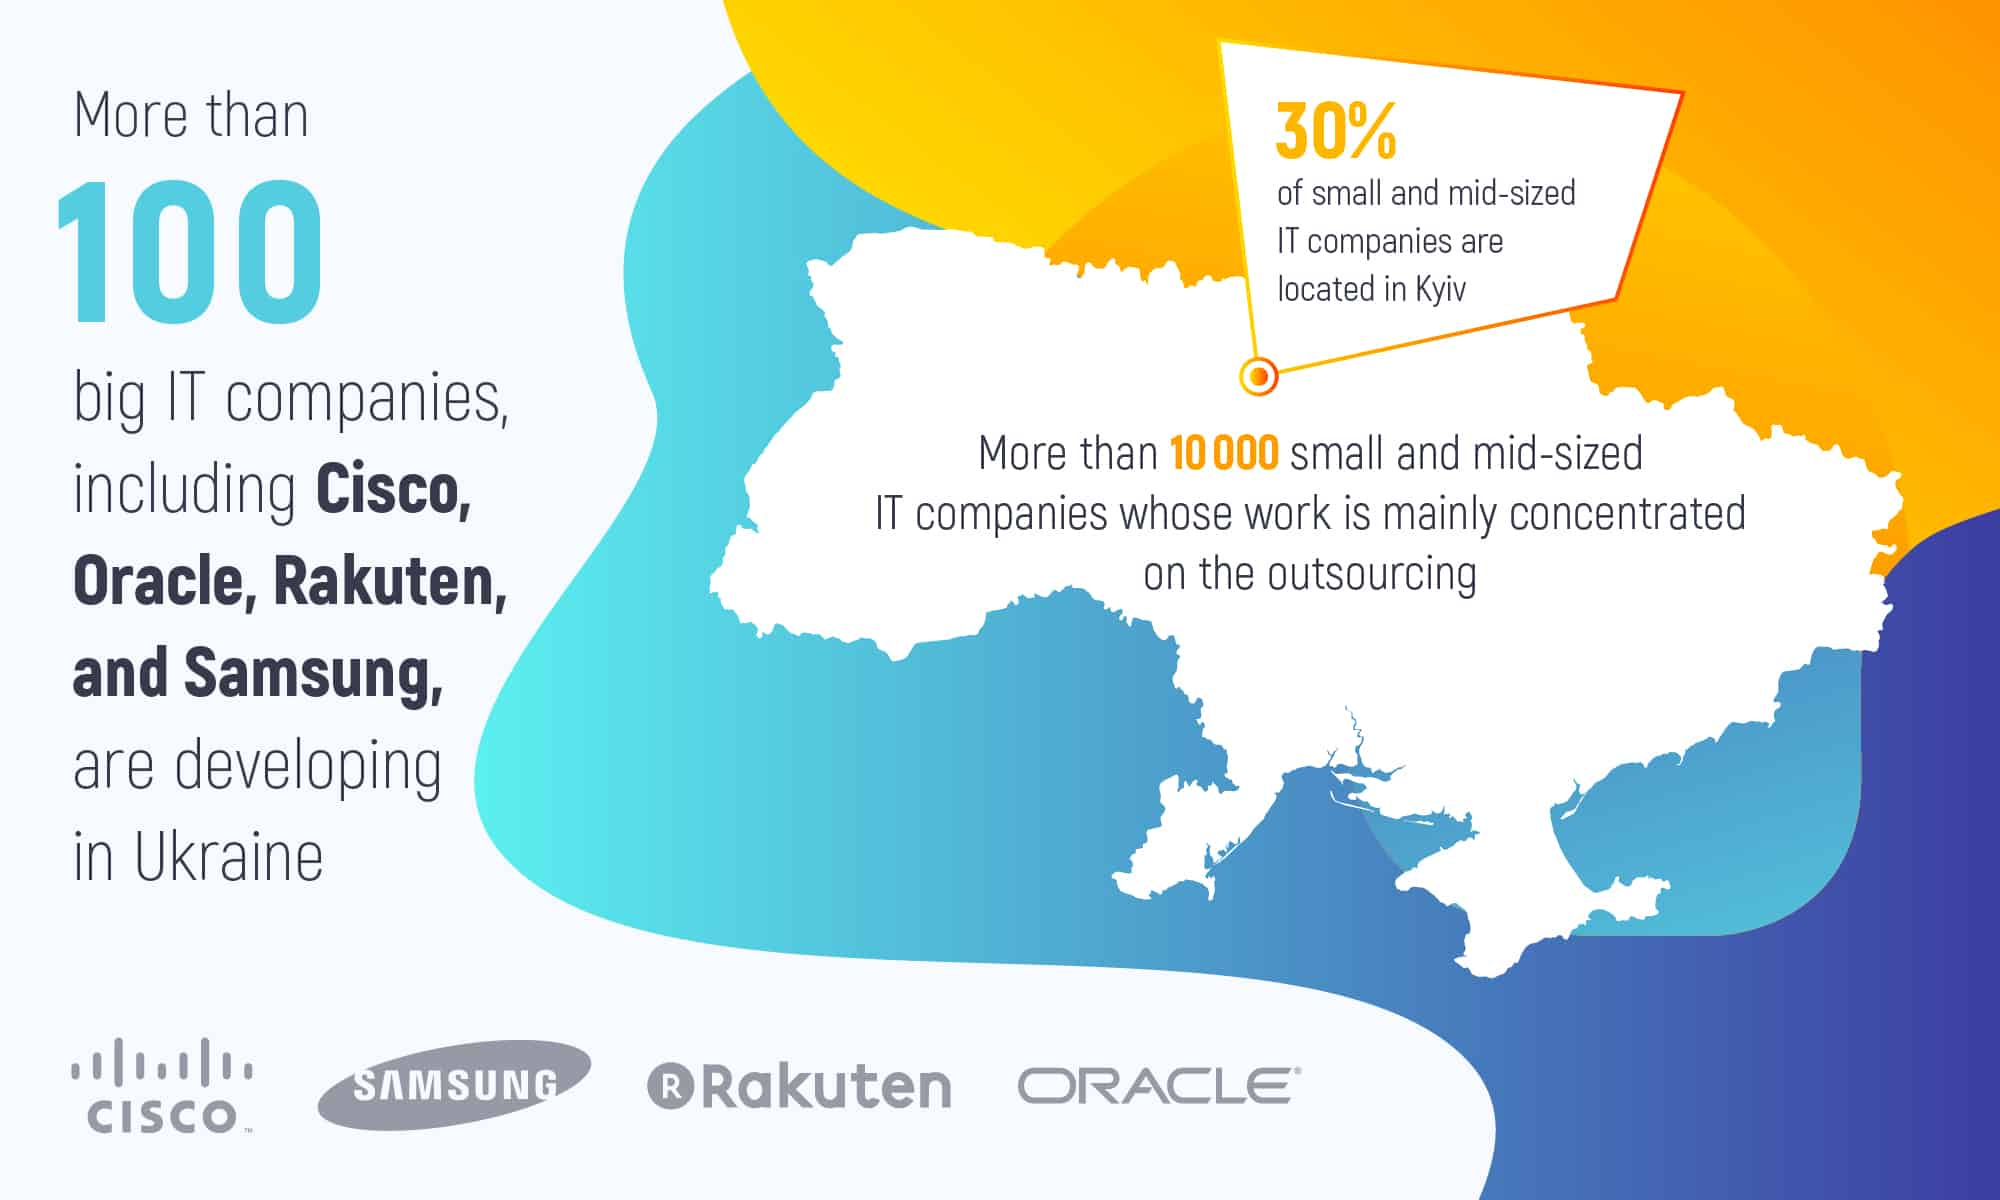 Image — Ukraine is no.1 for IT outsourcing